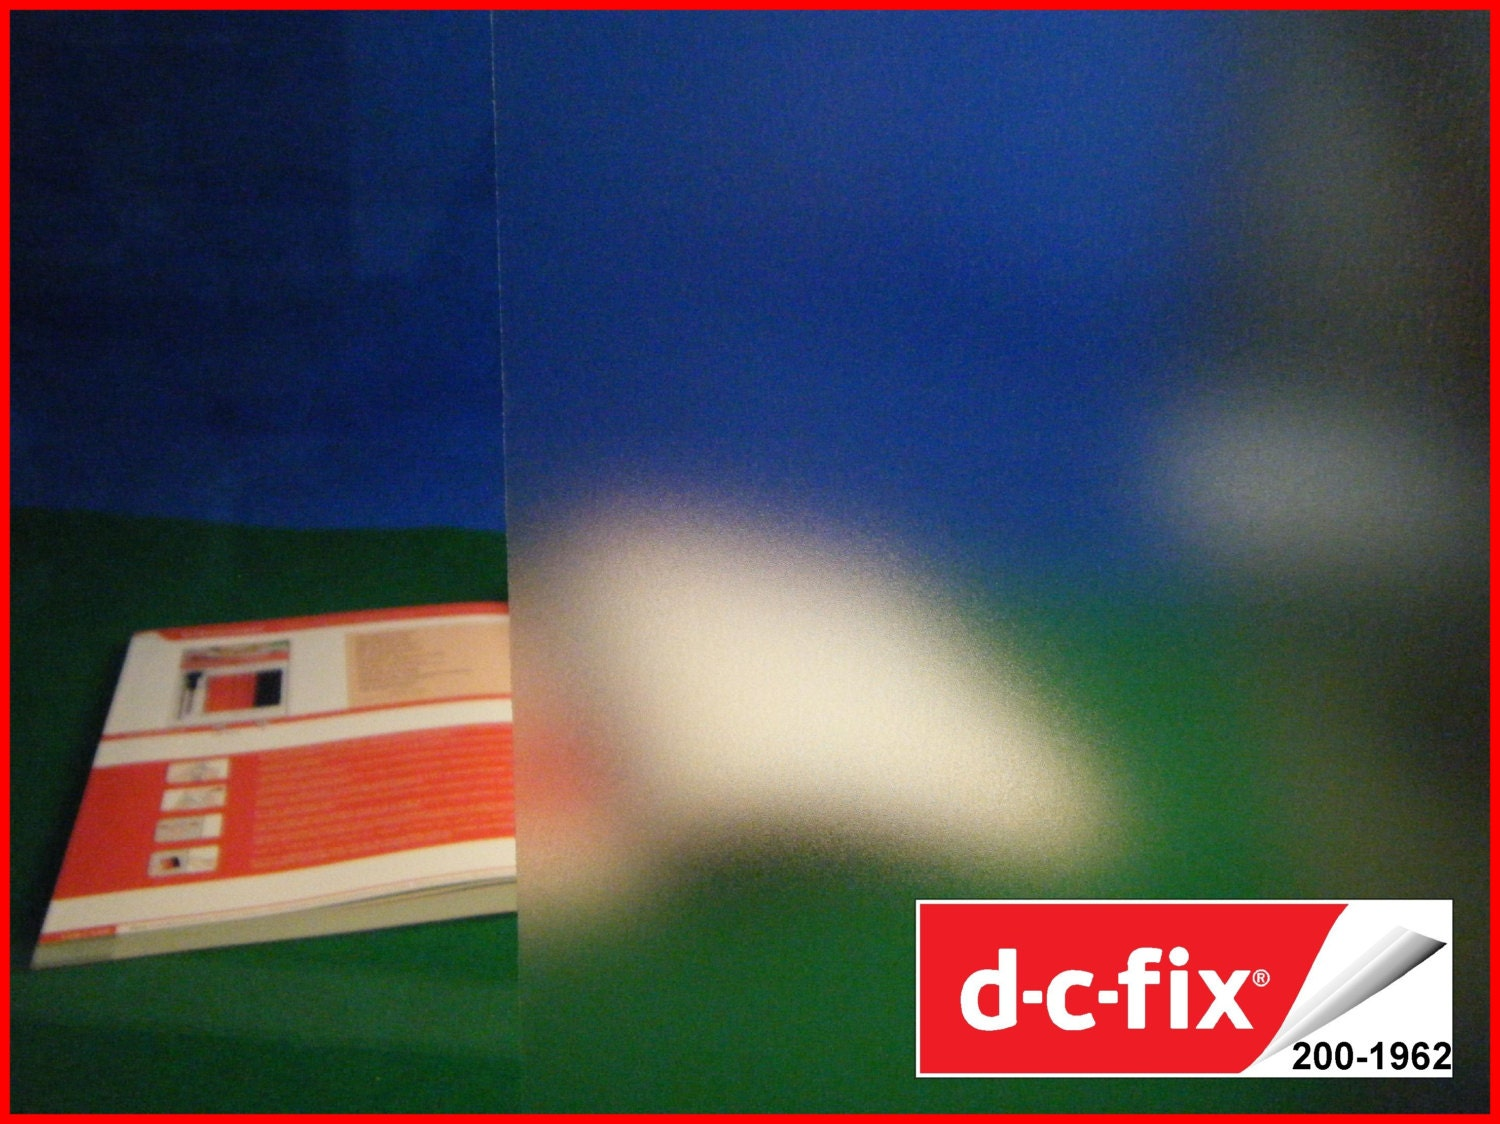 Contact paper dc fix transparent pattern privacy design sticky - Dc fix tischdecken ...